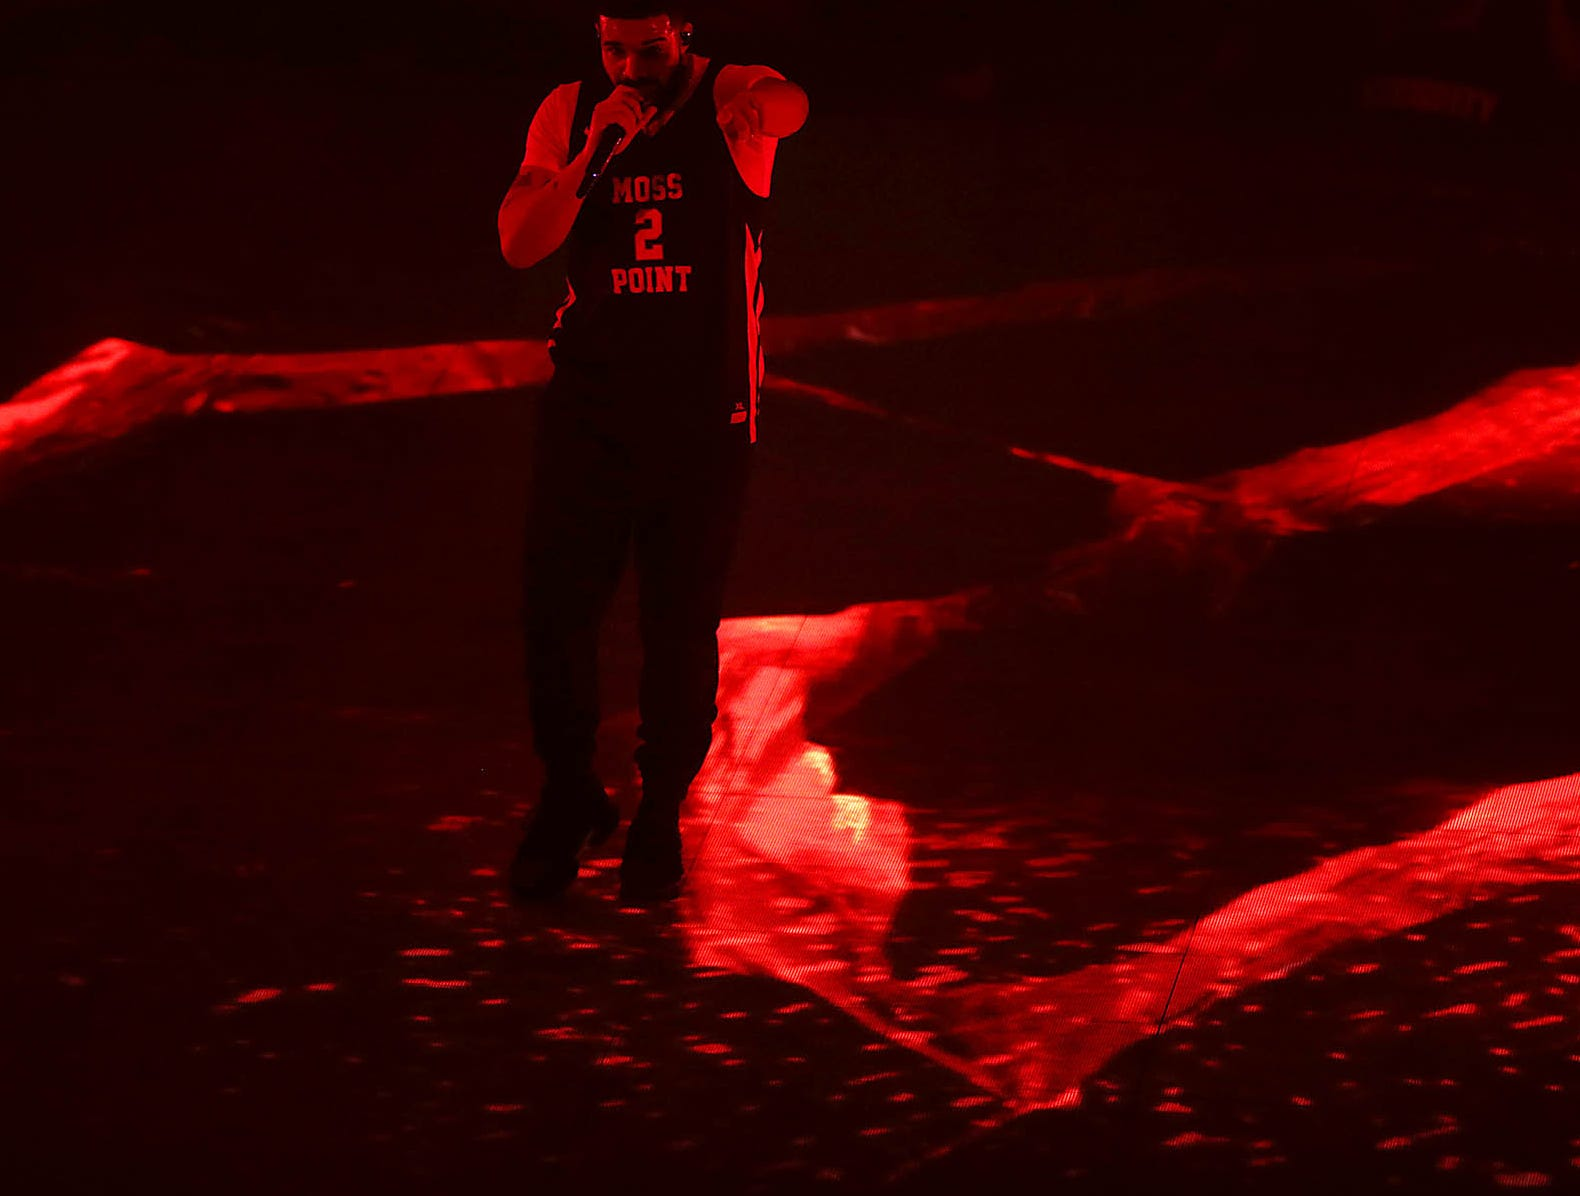 Drake performs during his Aubrey & The Three Migos Tour at Gila River Arena in Glendale on Monday, Oct. 8, 2018.